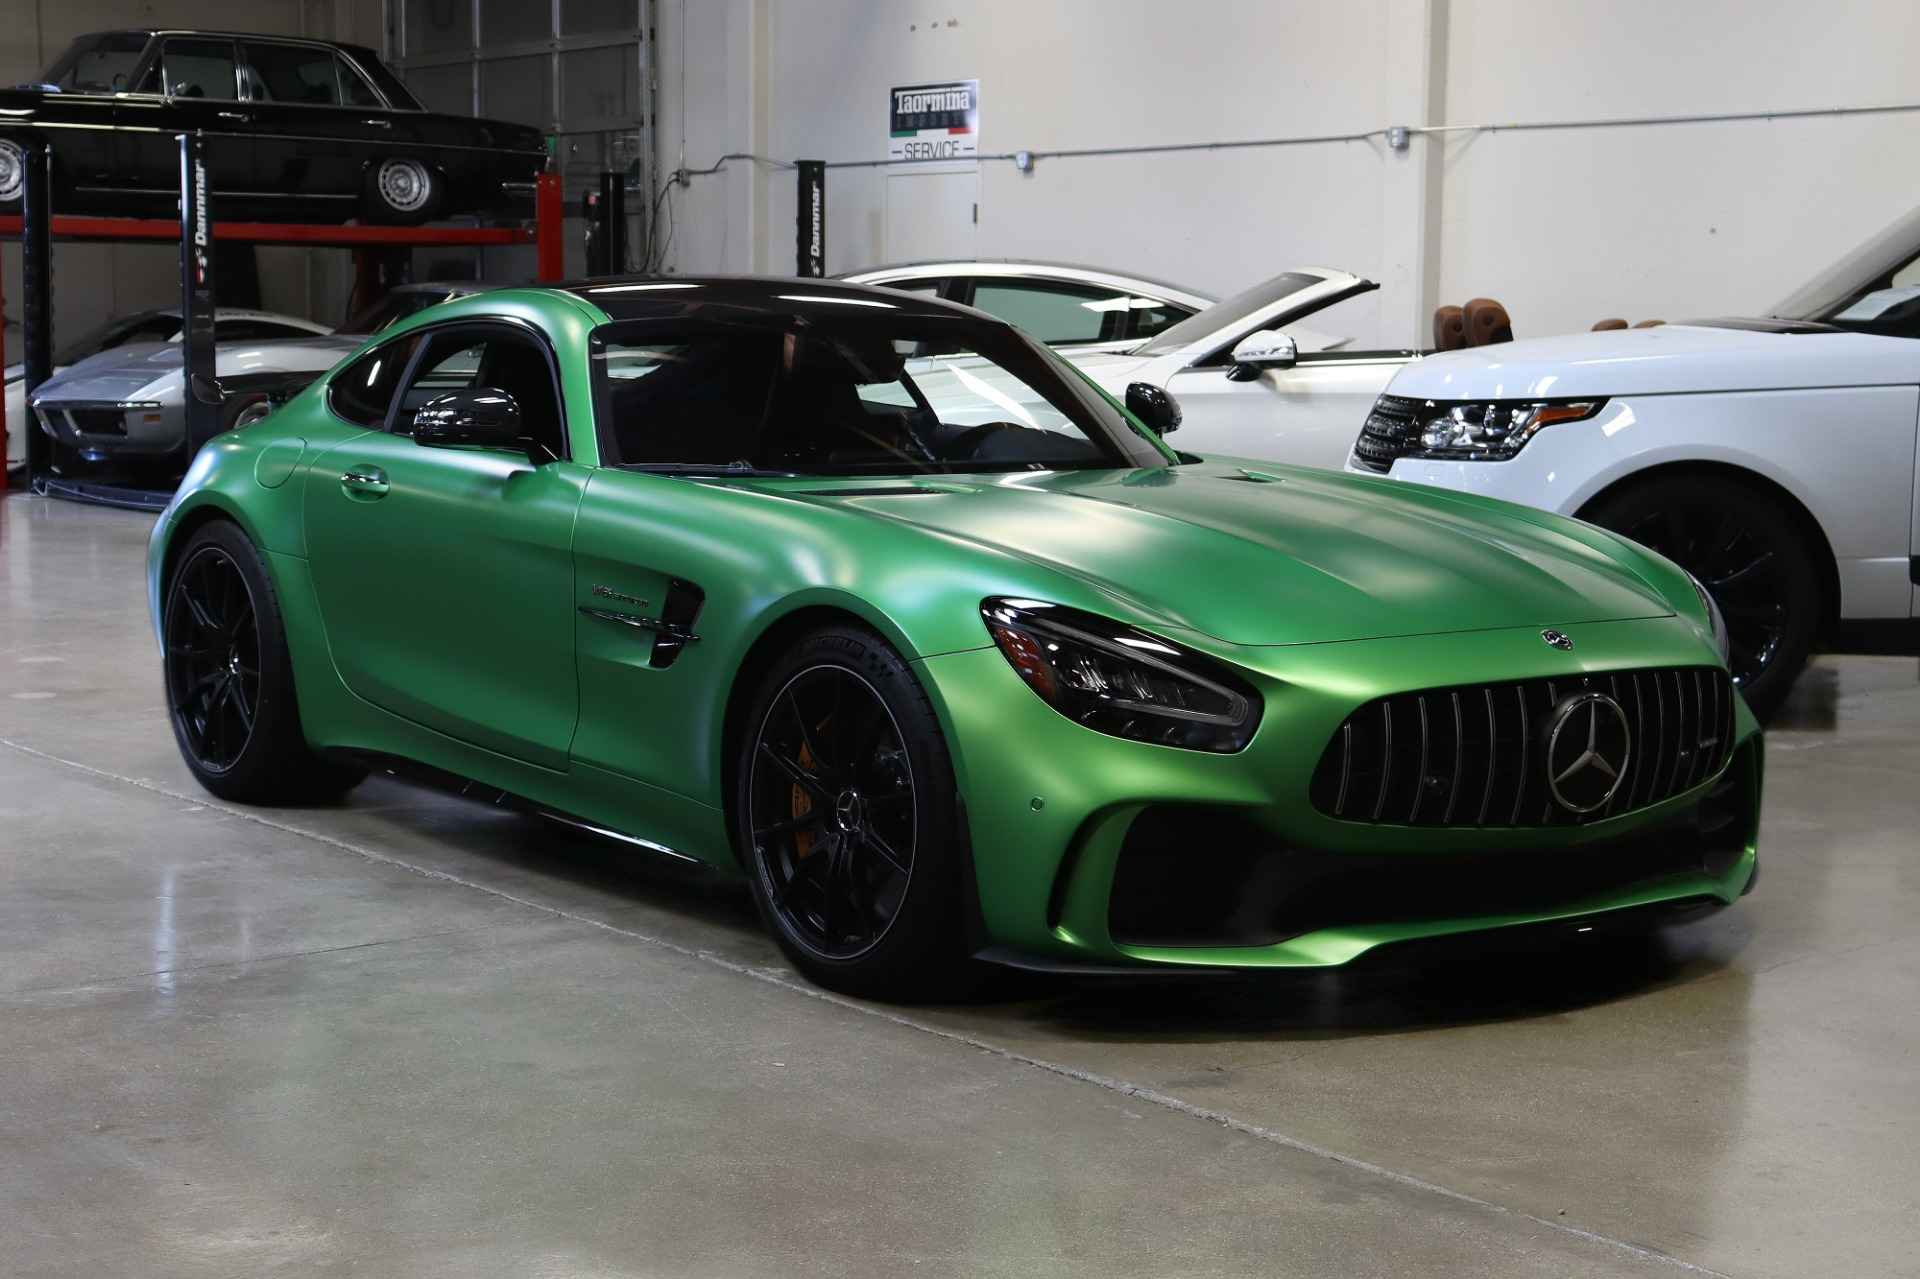 Used 2020 Mercedes-Benz AMG GT R for sale $177,995 at San Francisco Sports Cars in San Carlos CA 94070 1